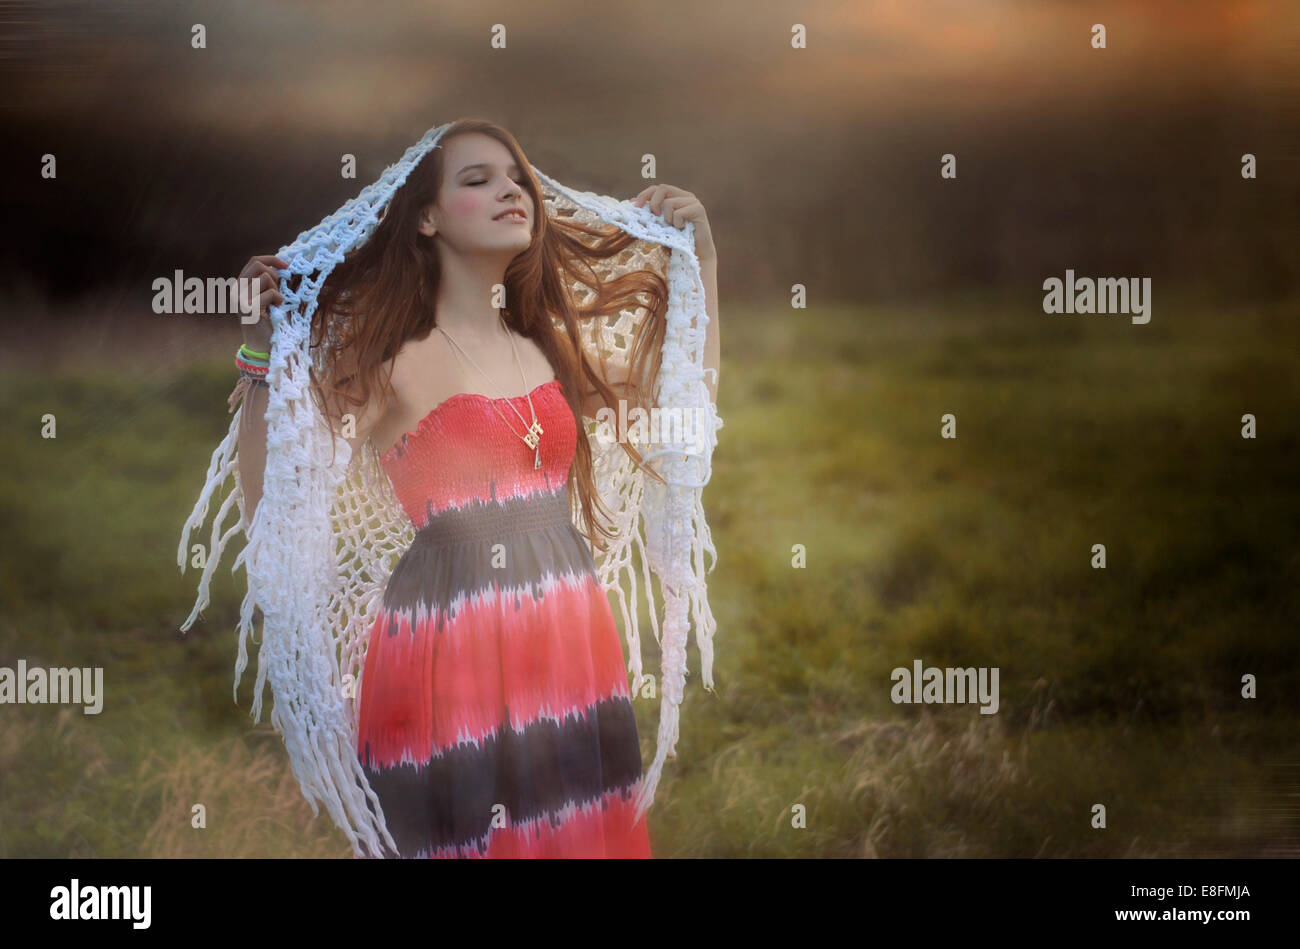 Woman walking and dreaming on misty meadow - Stock Image